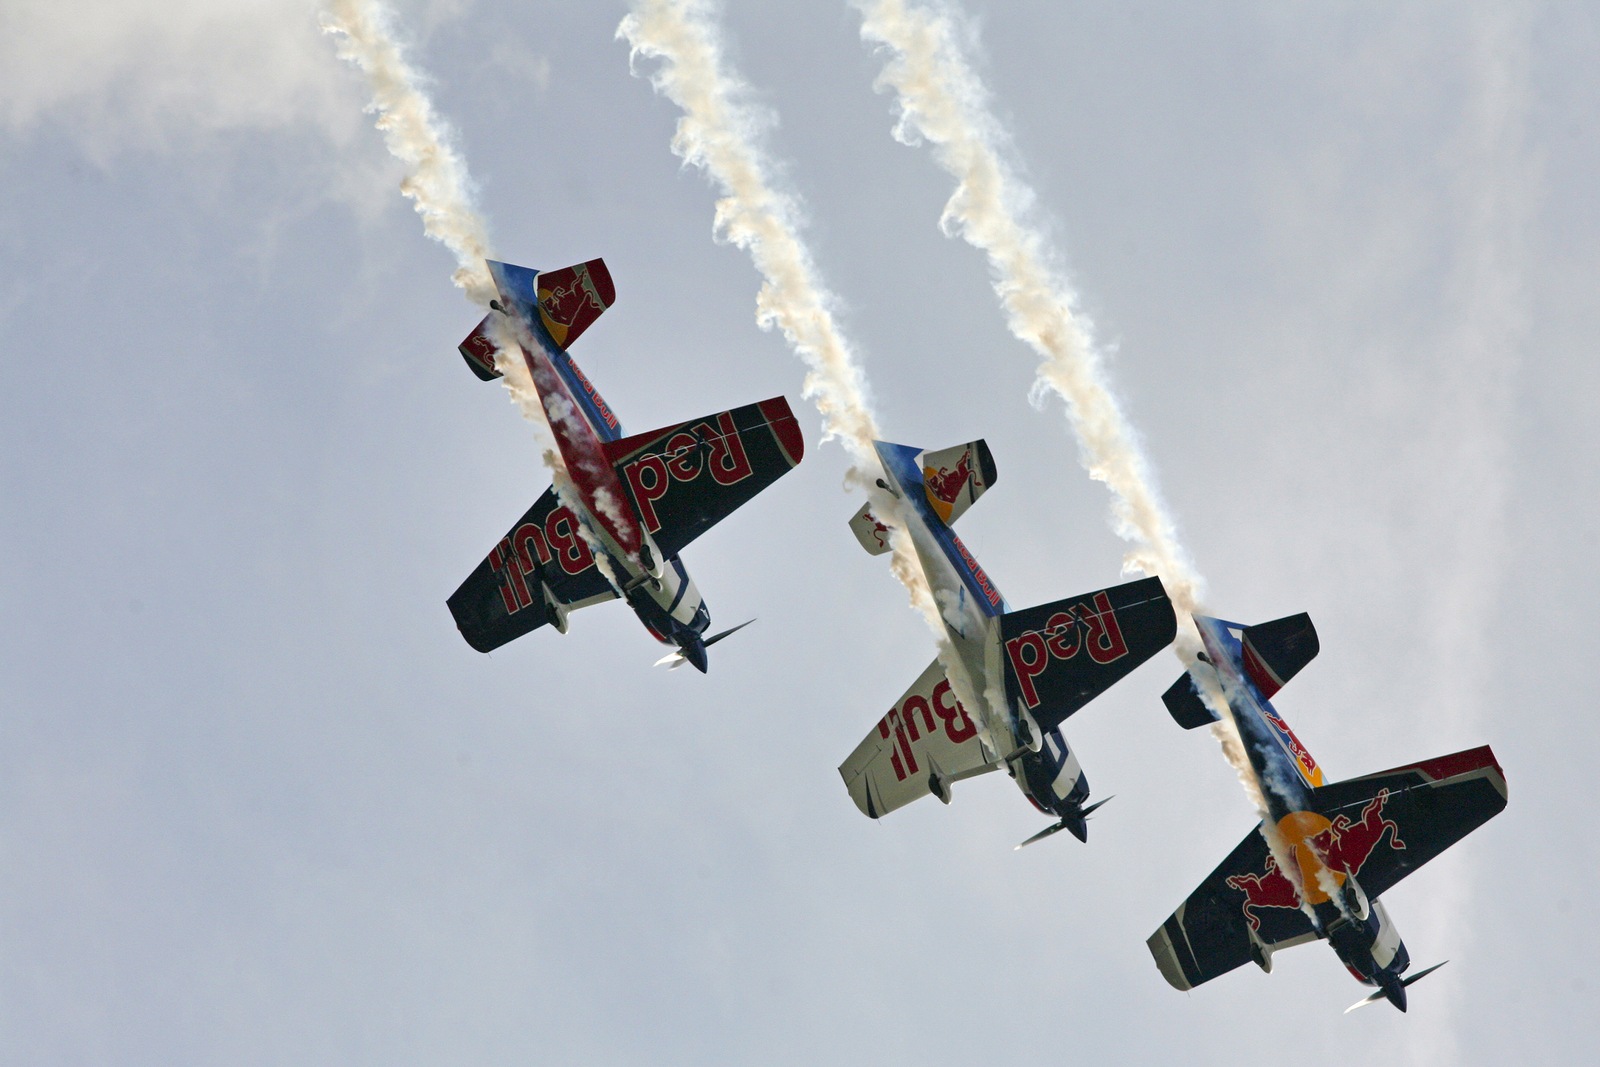 Budapest mayor cancels Red Bull Air Race - Emerging Europe